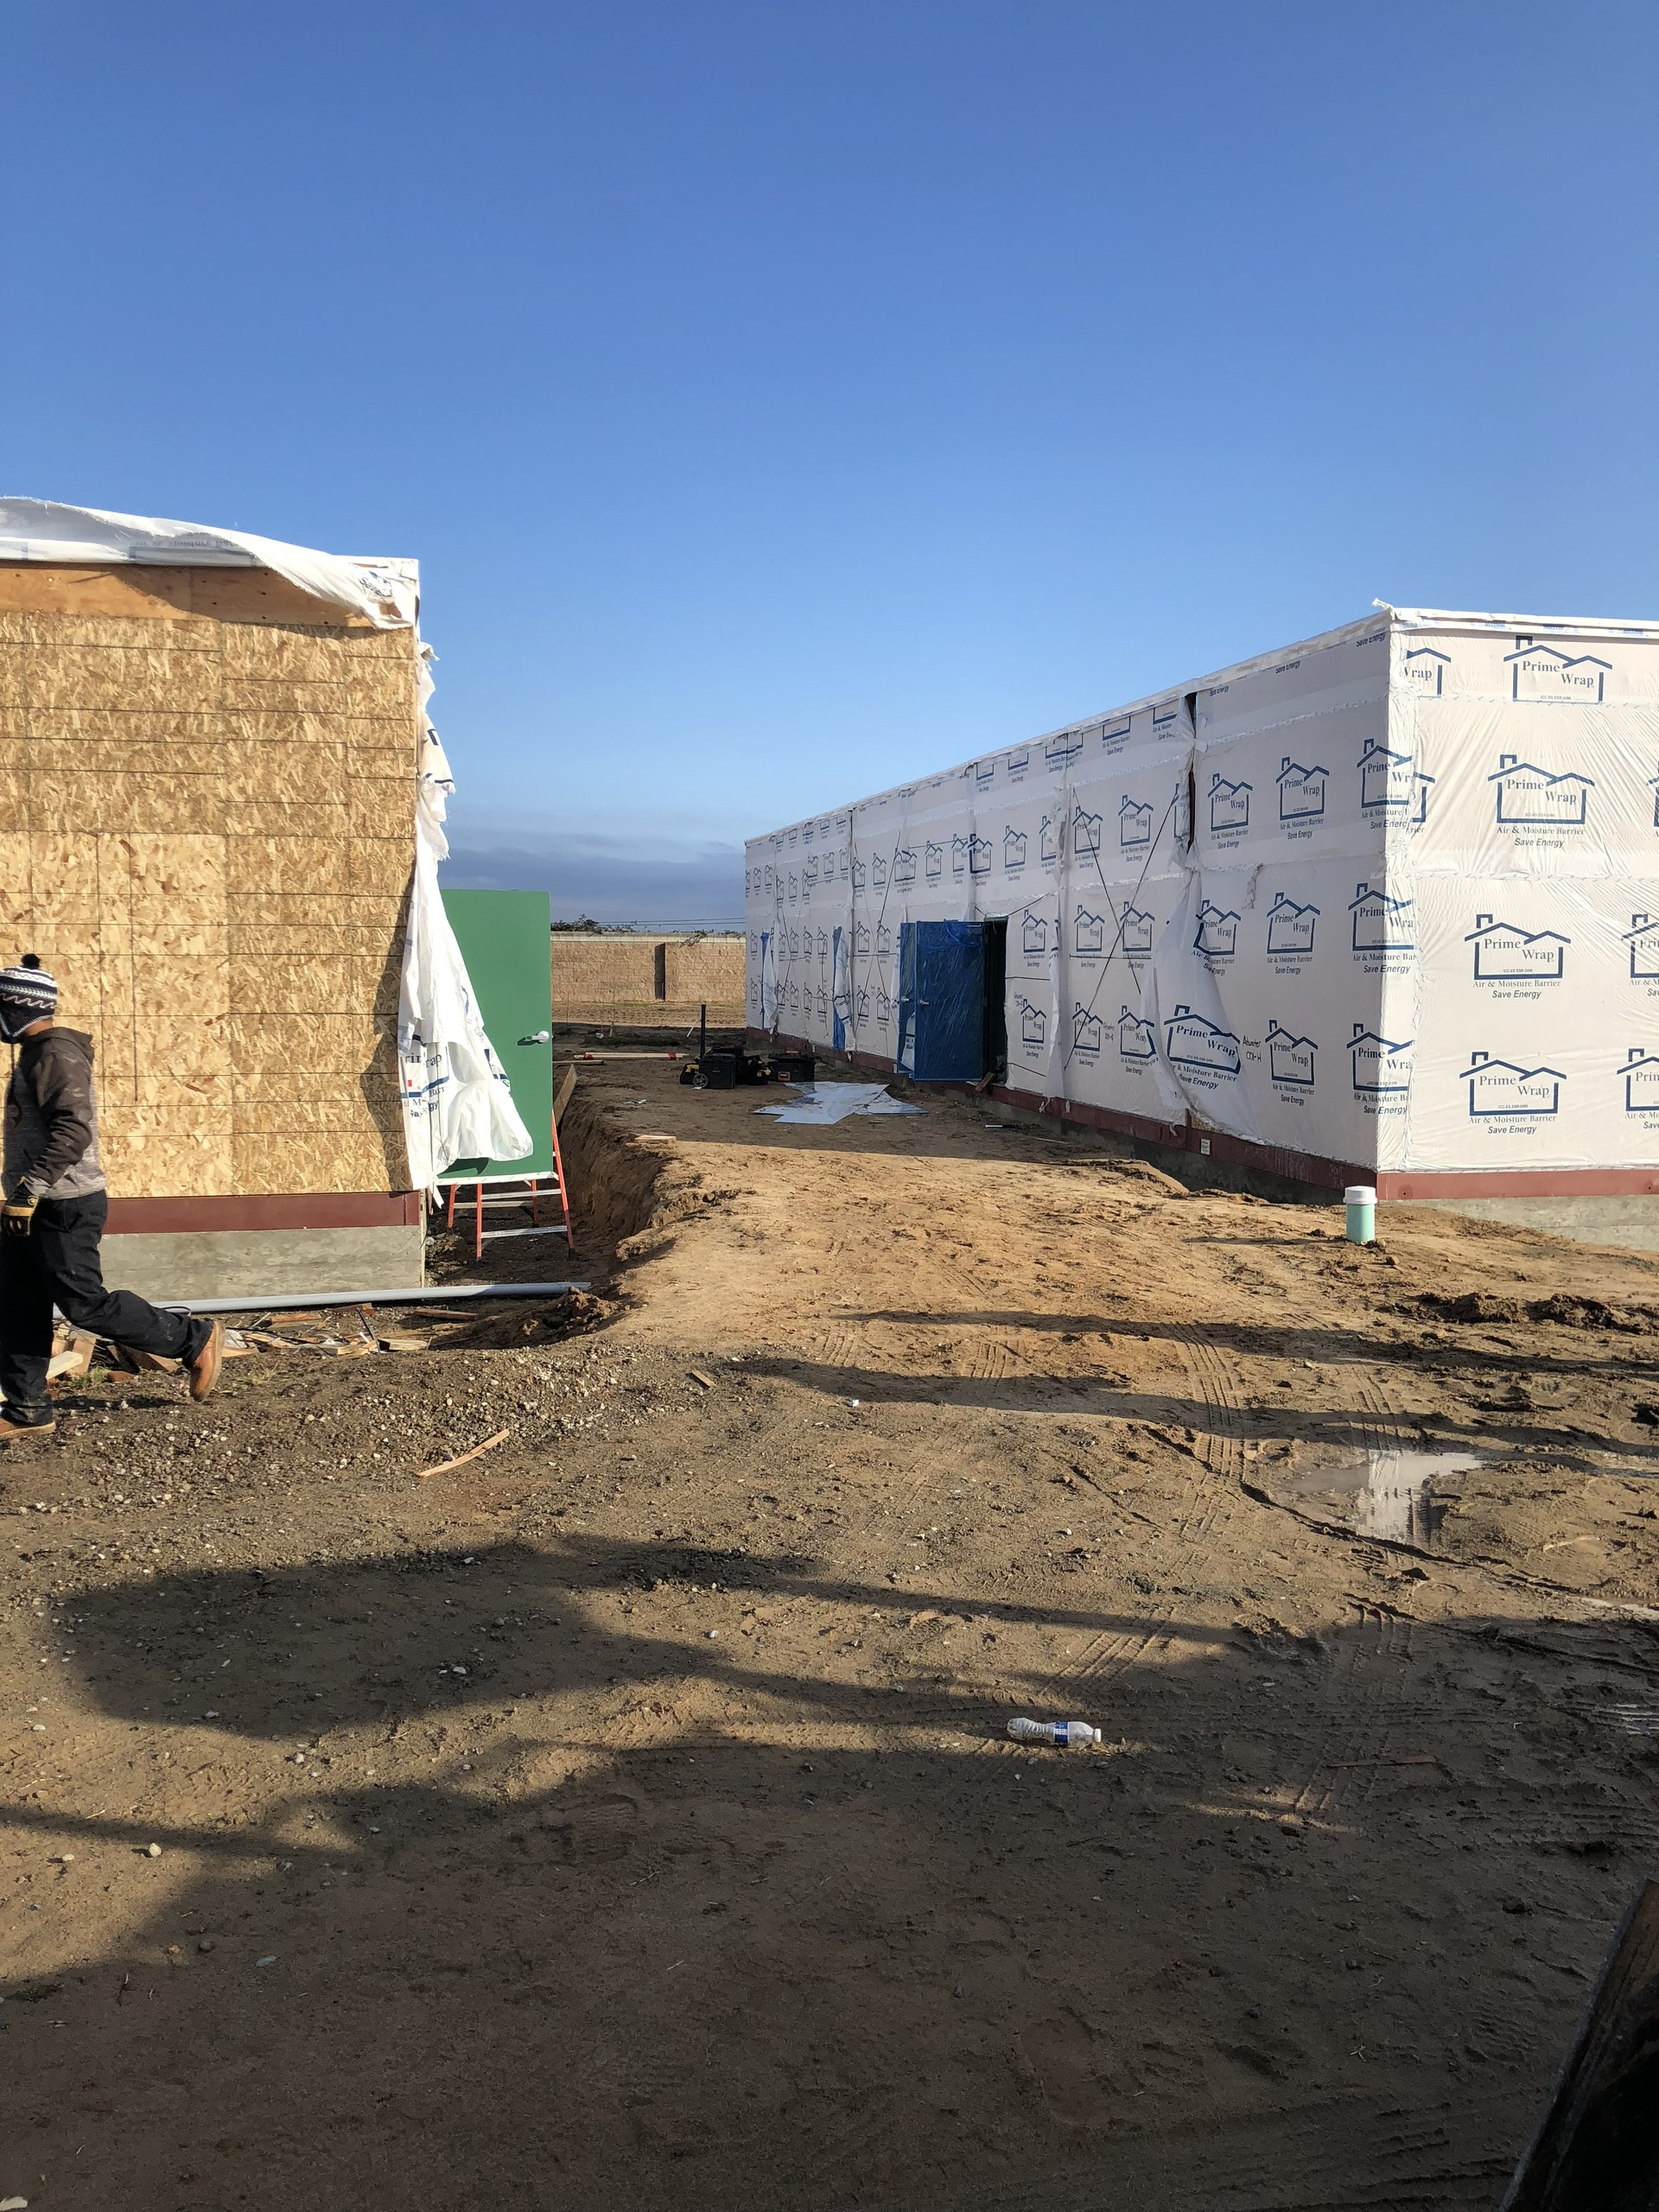 Outside of portable classrooms